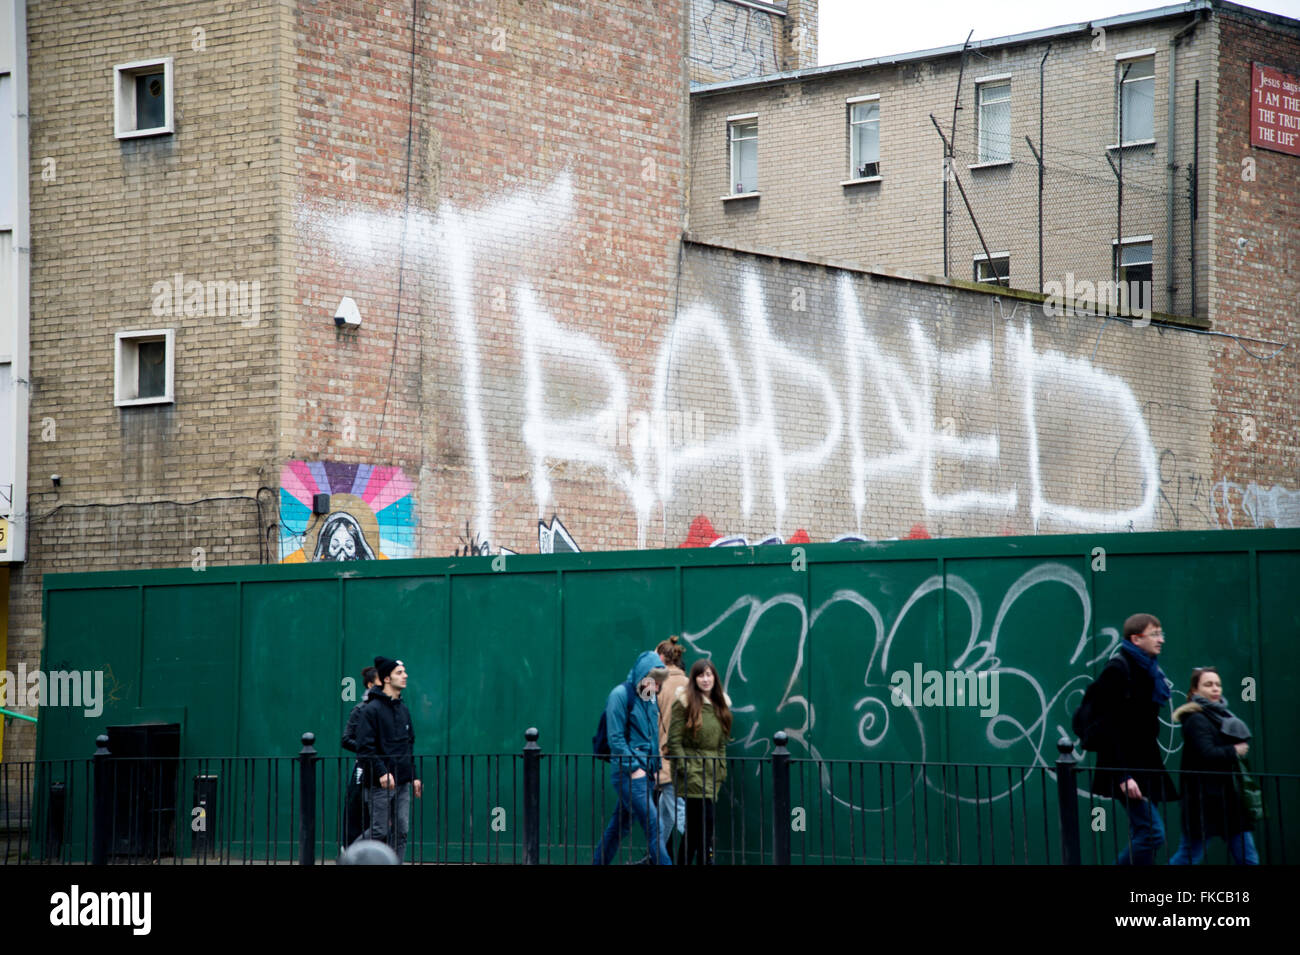 Bethnal Green. Writing on a wall, 'Trapped'. - Stock Image